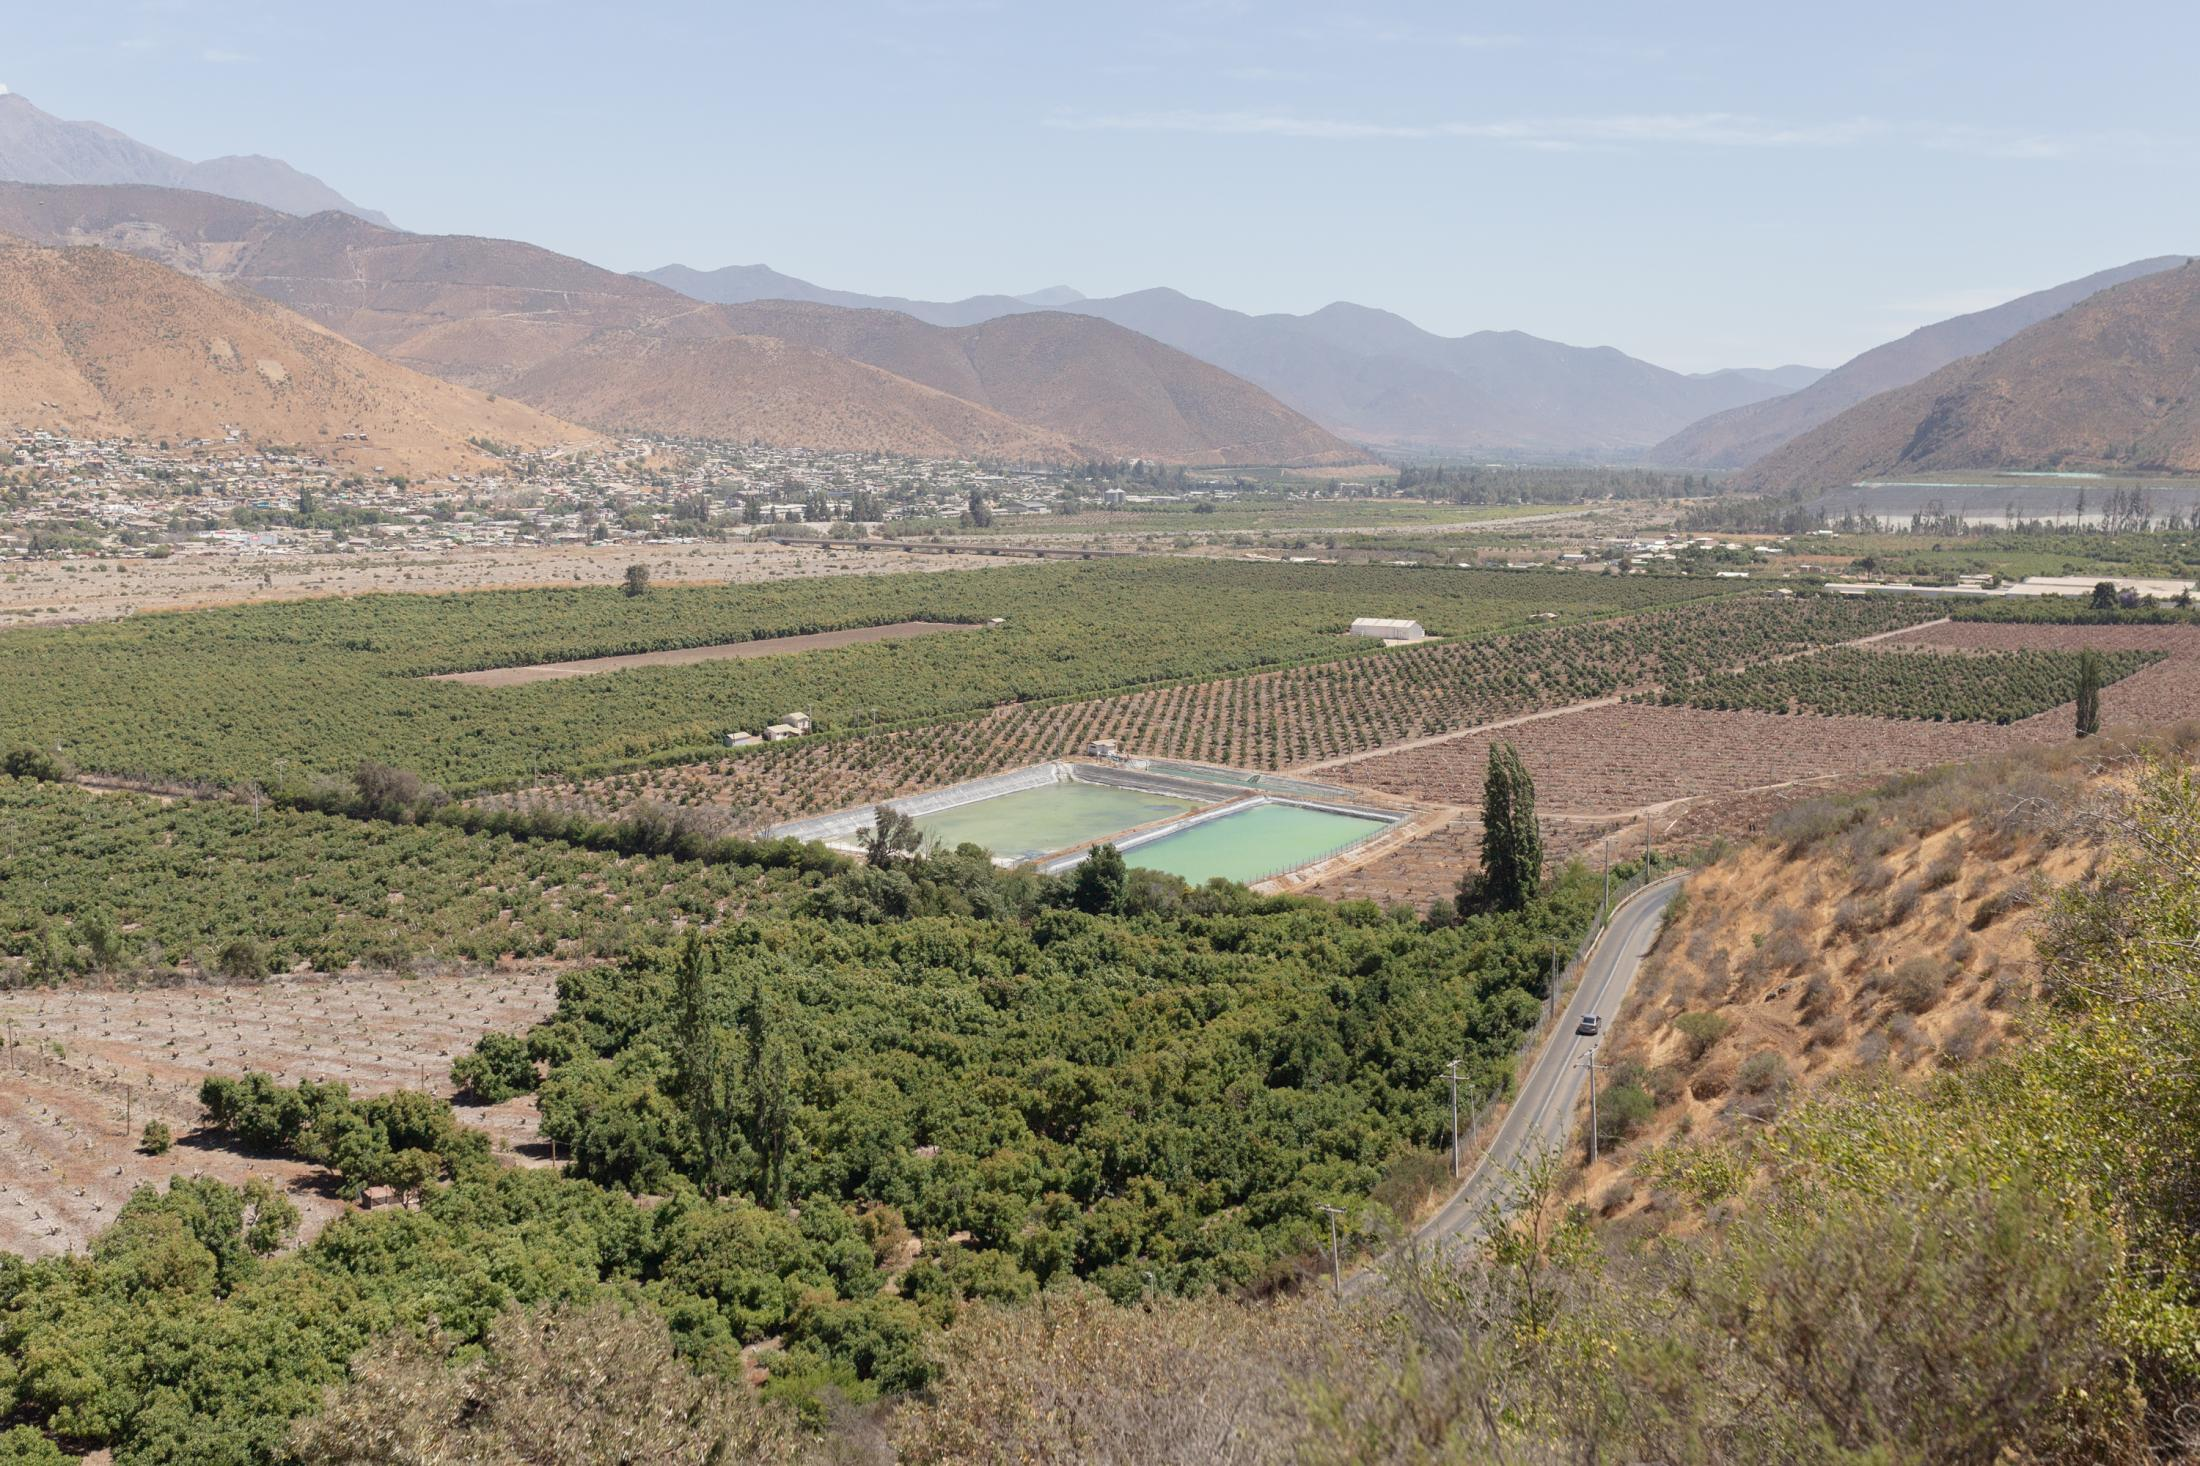 December, 19th, 2020. View of industrial avocado plantations with water accumulators in La Ligua valley as it passes through Cabildo. Between 600 and 2000 liters of water are needed to produce one kg of this fruit. The avocado market is mainly based on exports to the United States, Europe, China and Argentina.